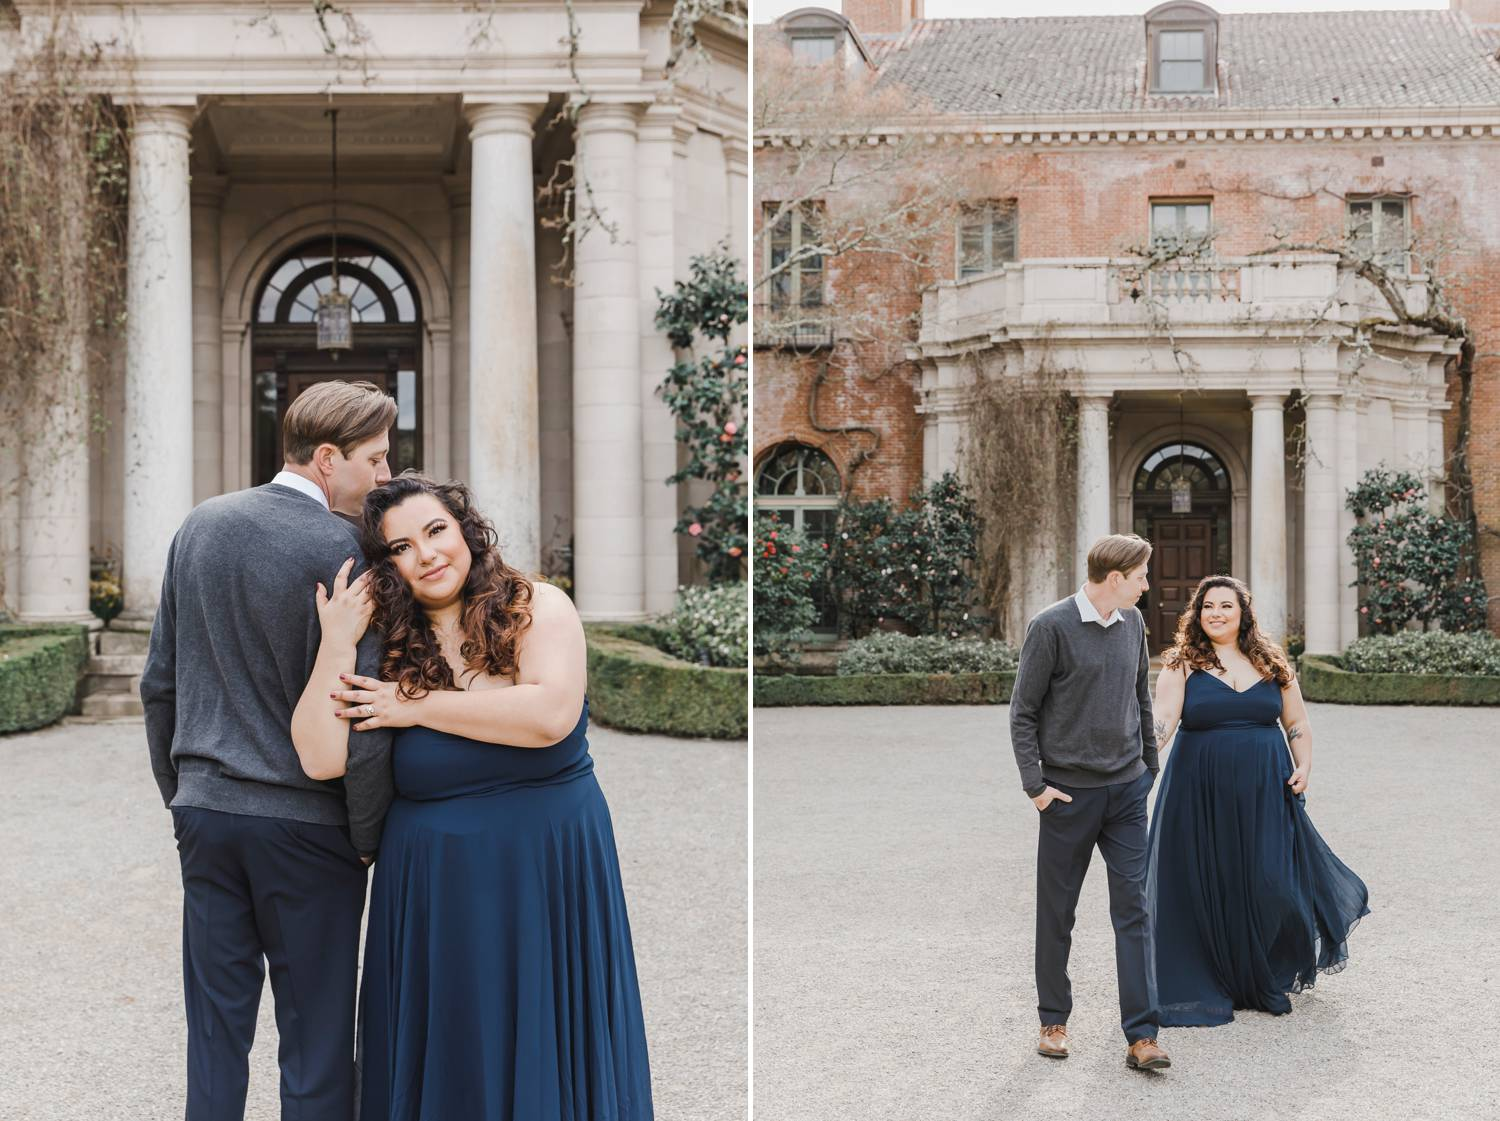 An engaged couple poses for photos in front of a beautiful old mansion. The woman wears a navy blue maxi dress.